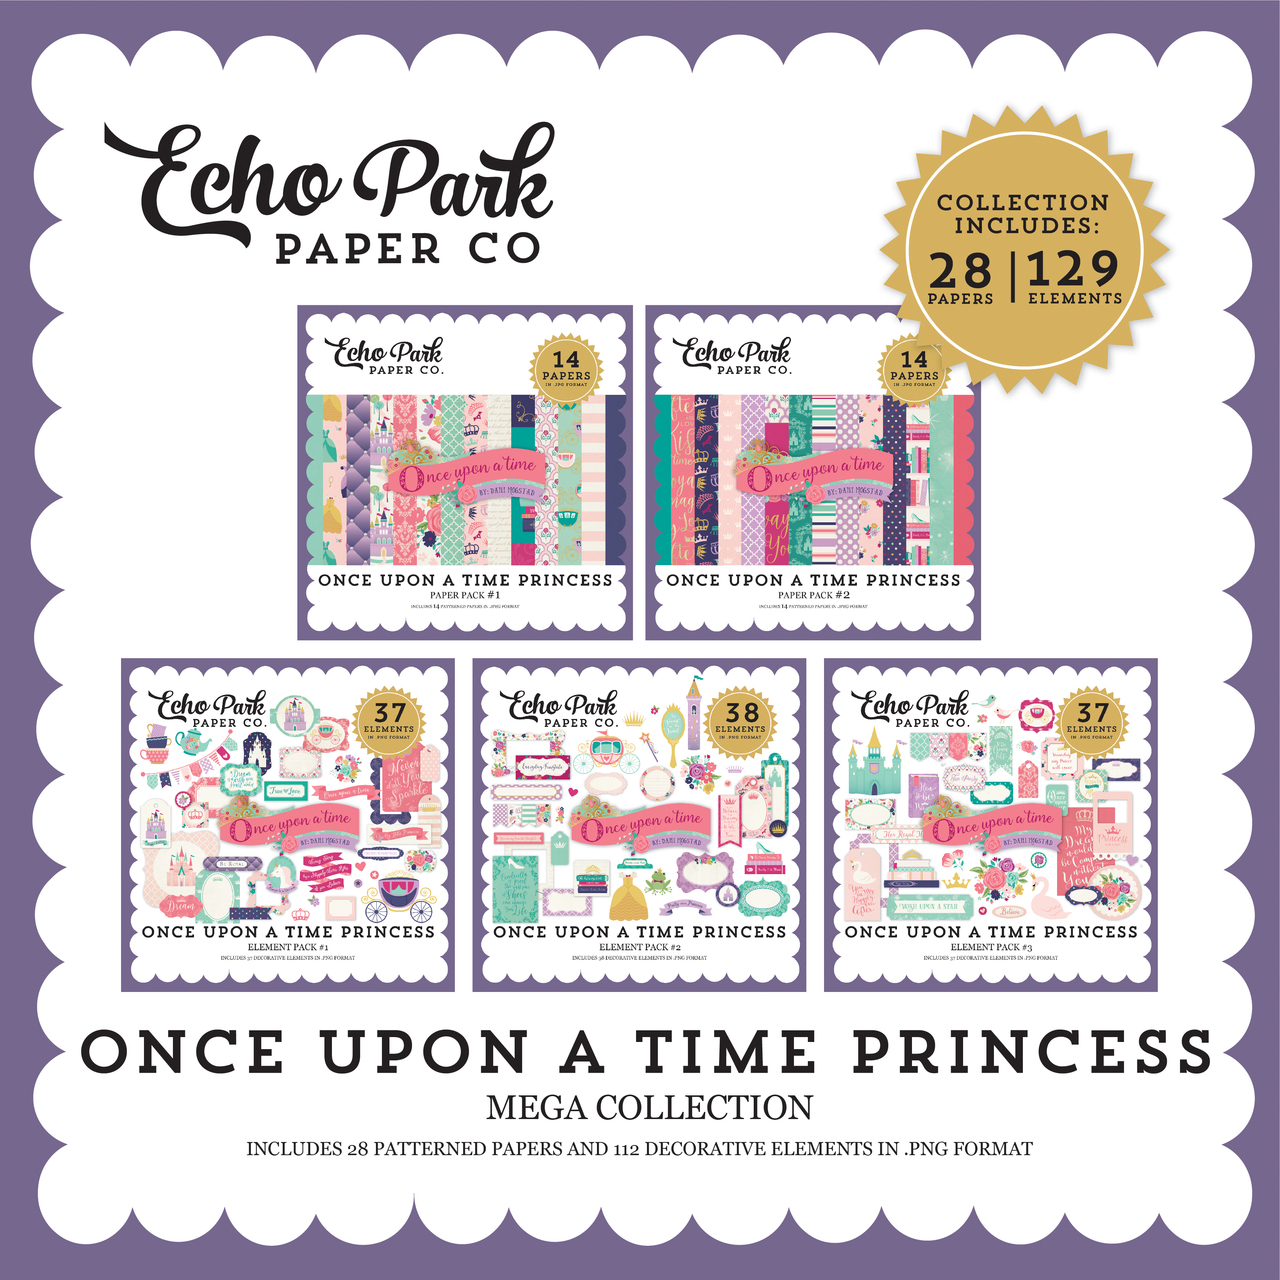 Once Upon a Time Princess Mega Collection